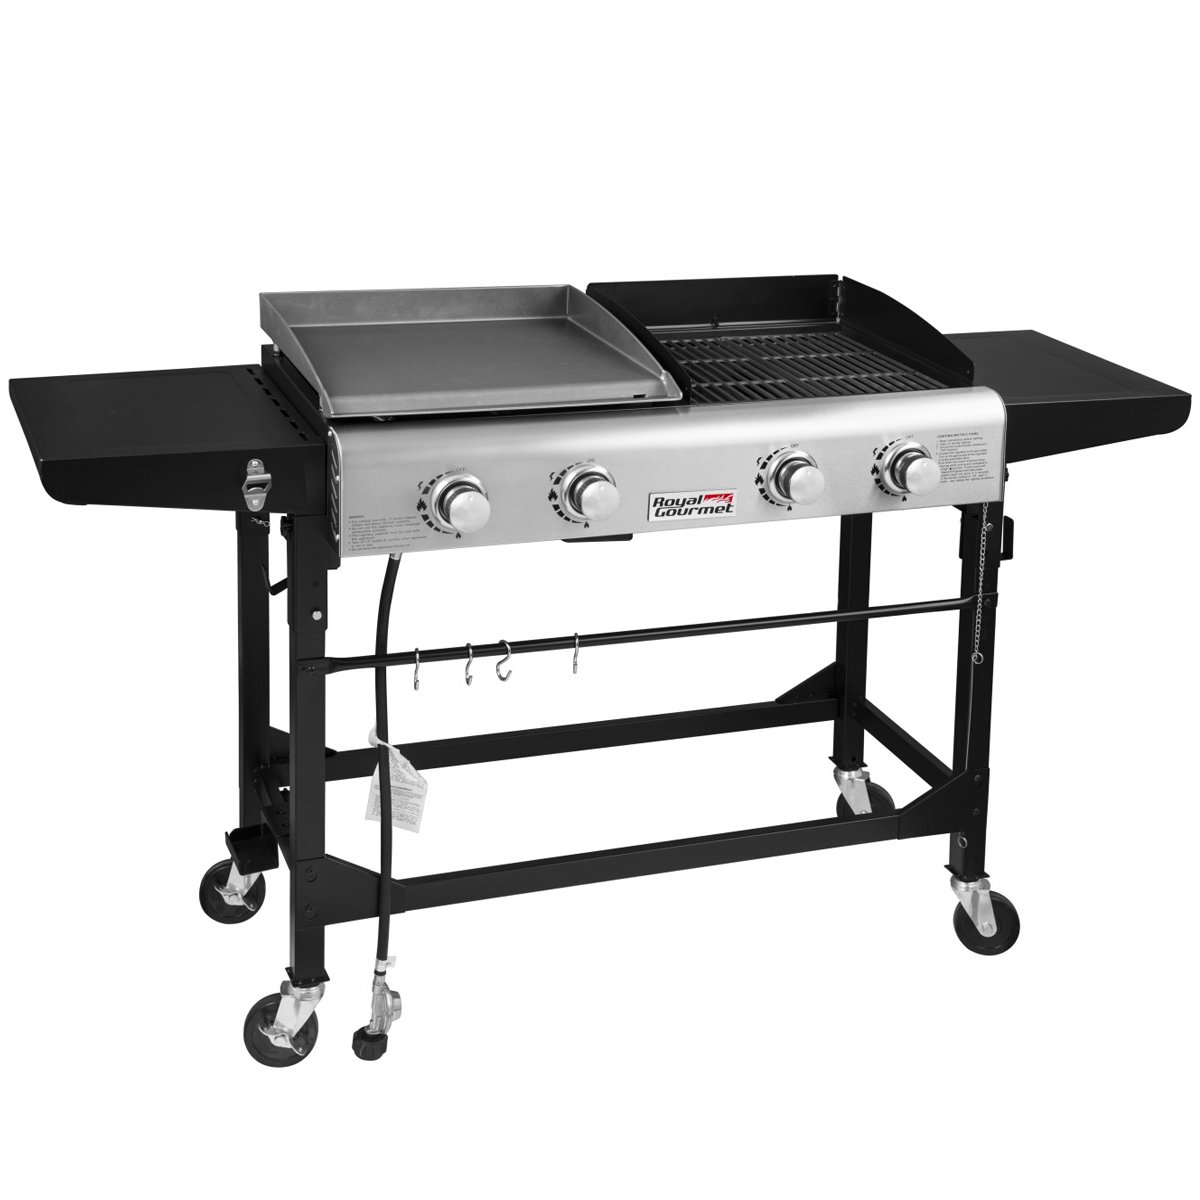 Royal Gourmet Portable Propane Gas Grill and Griddle Combo,4-Burner,Griddle Flat Top, Folding Legs,Versatile Outdoor Camping Stove with Side Table